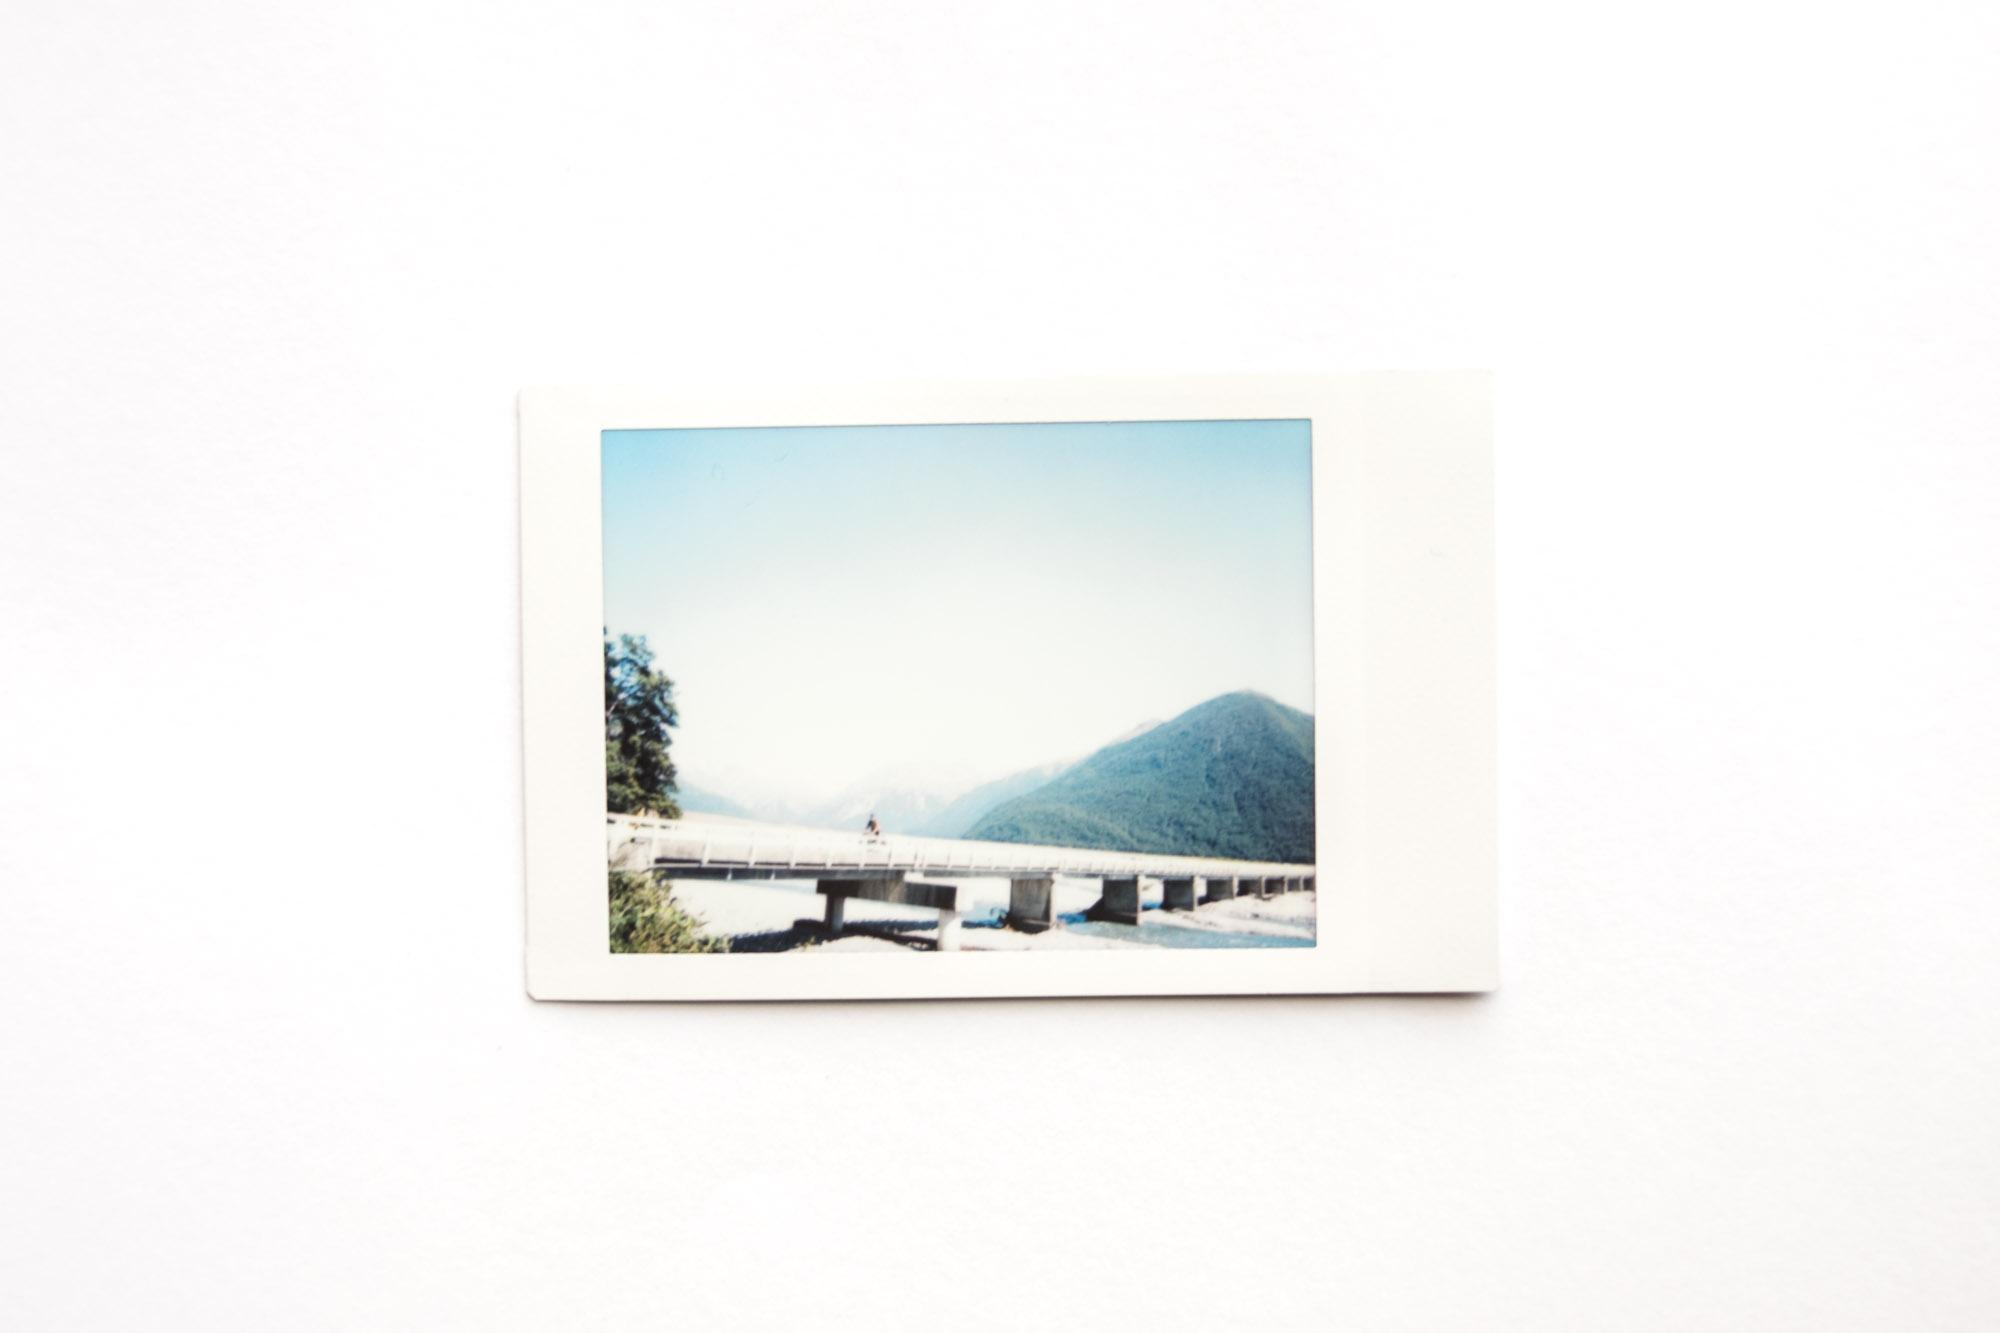 Instax Photo by Mallory